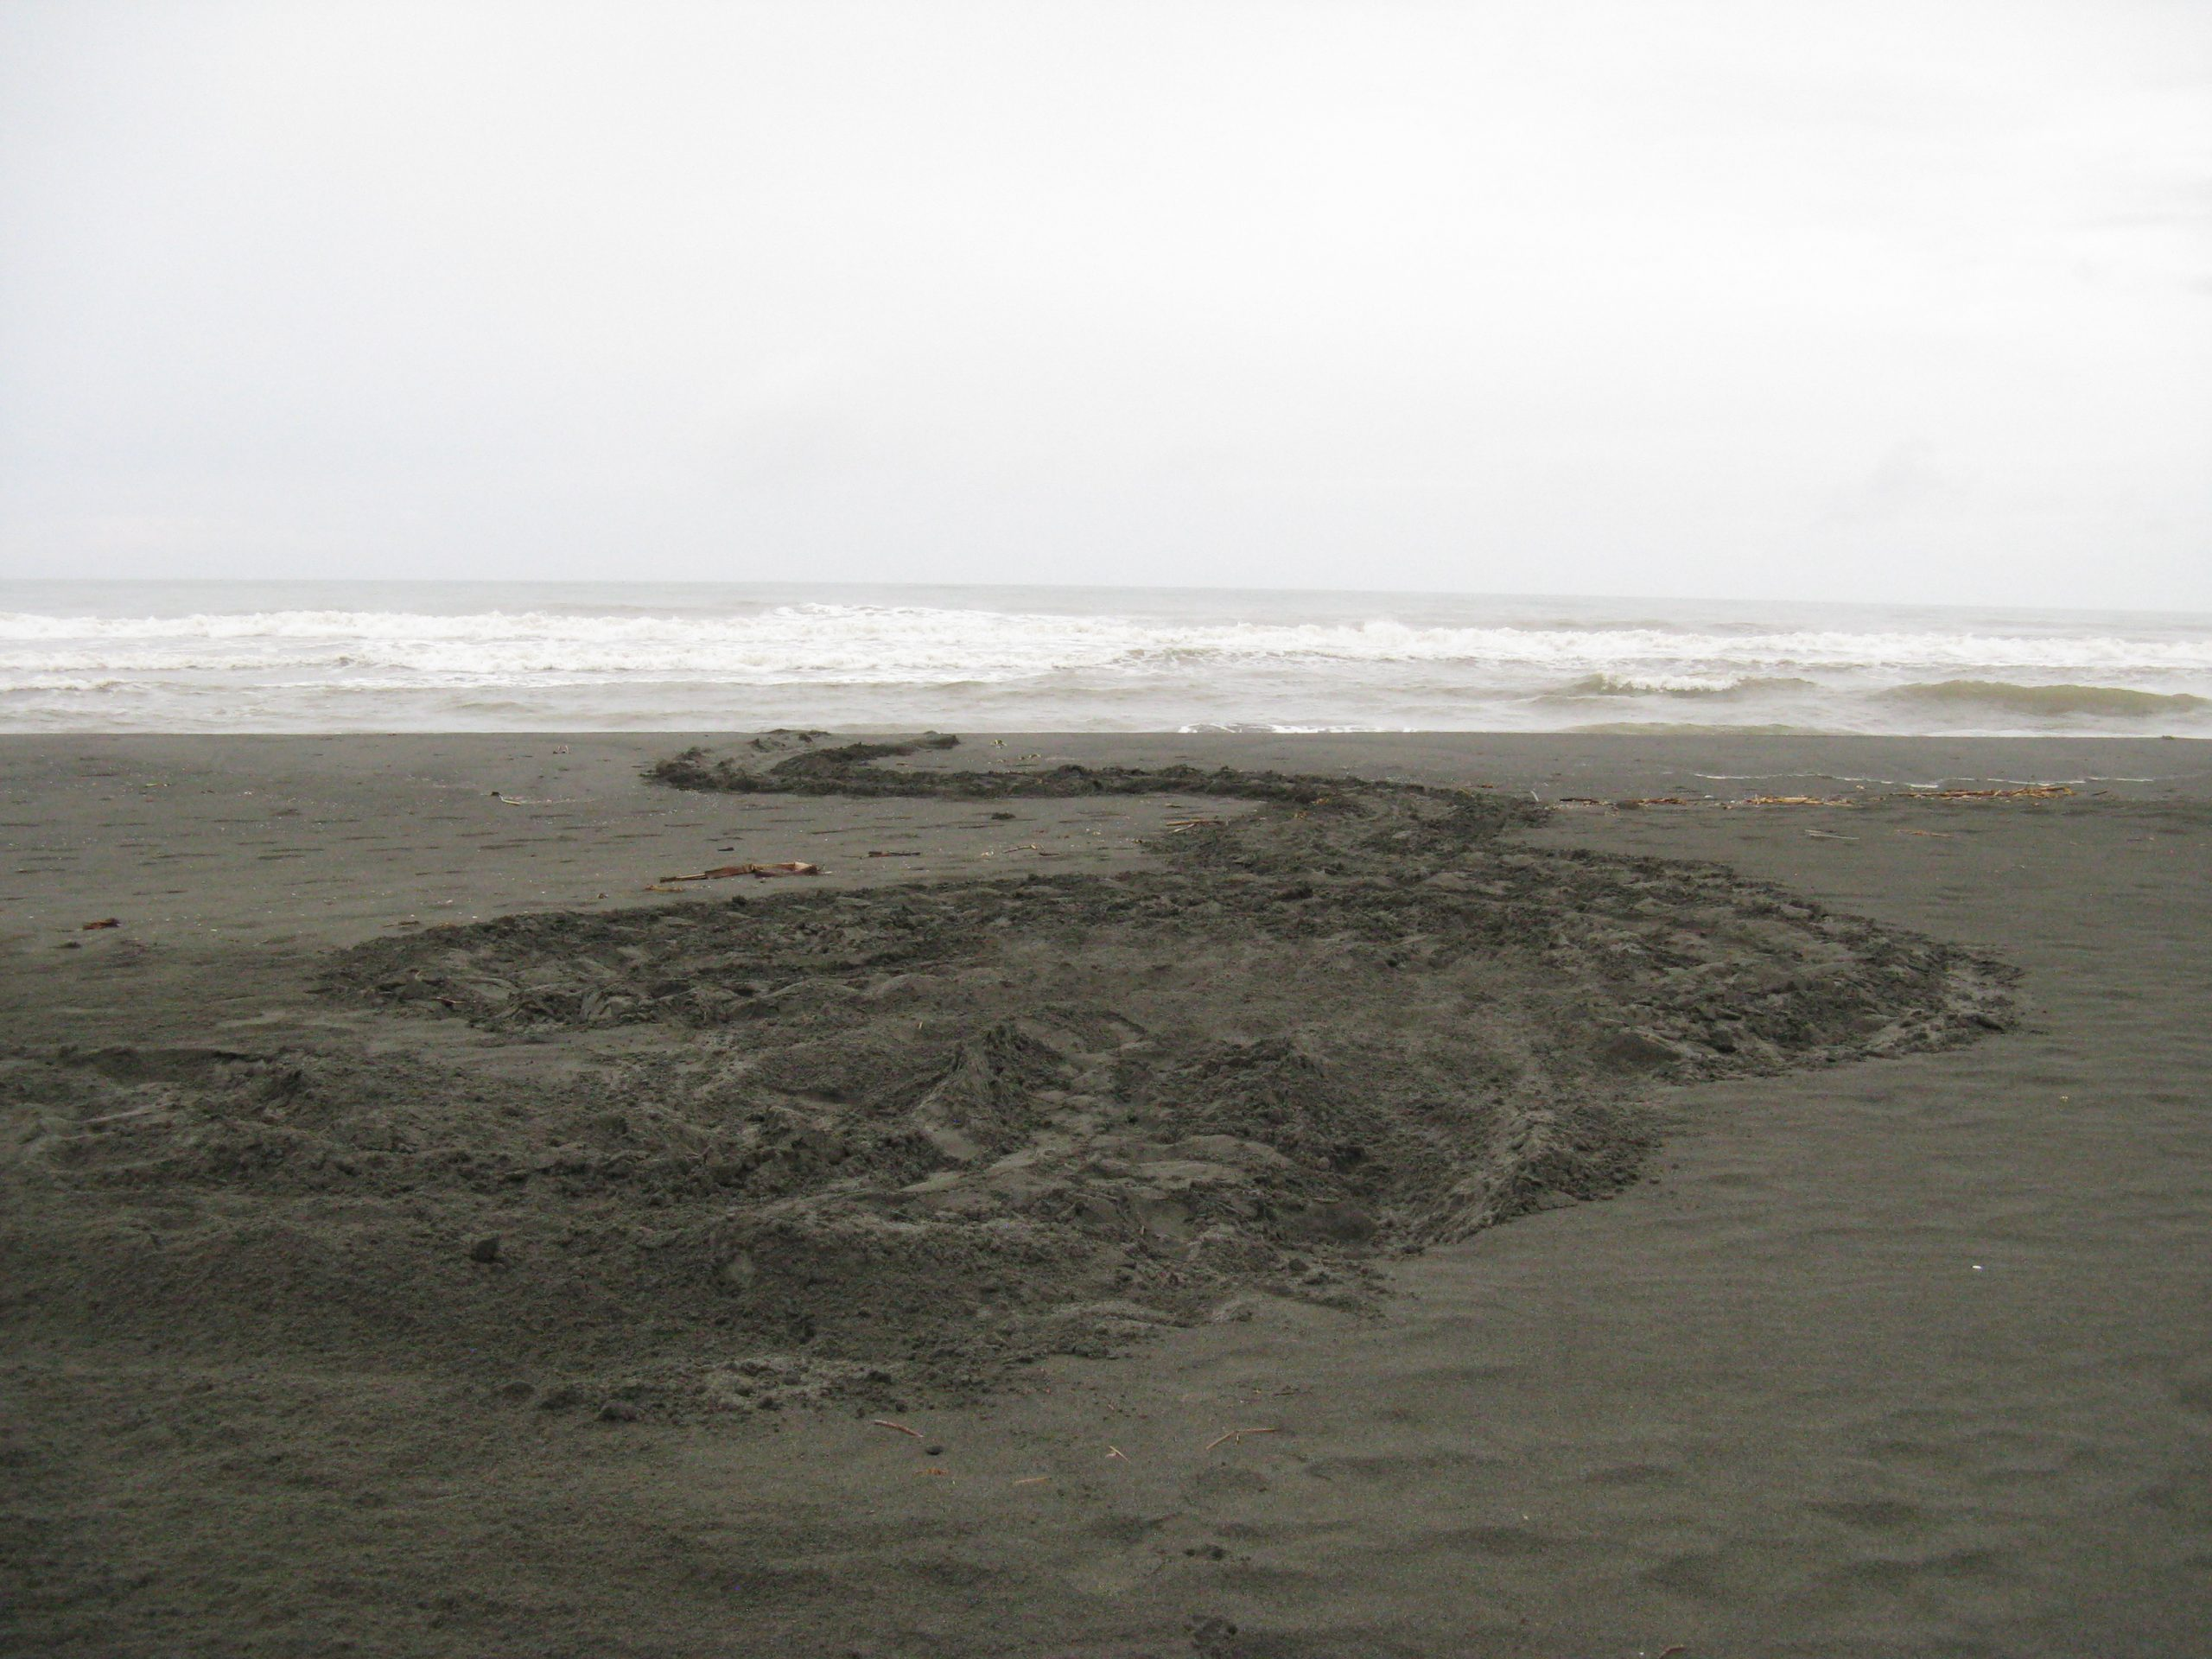 Leatherback tracks in the sand